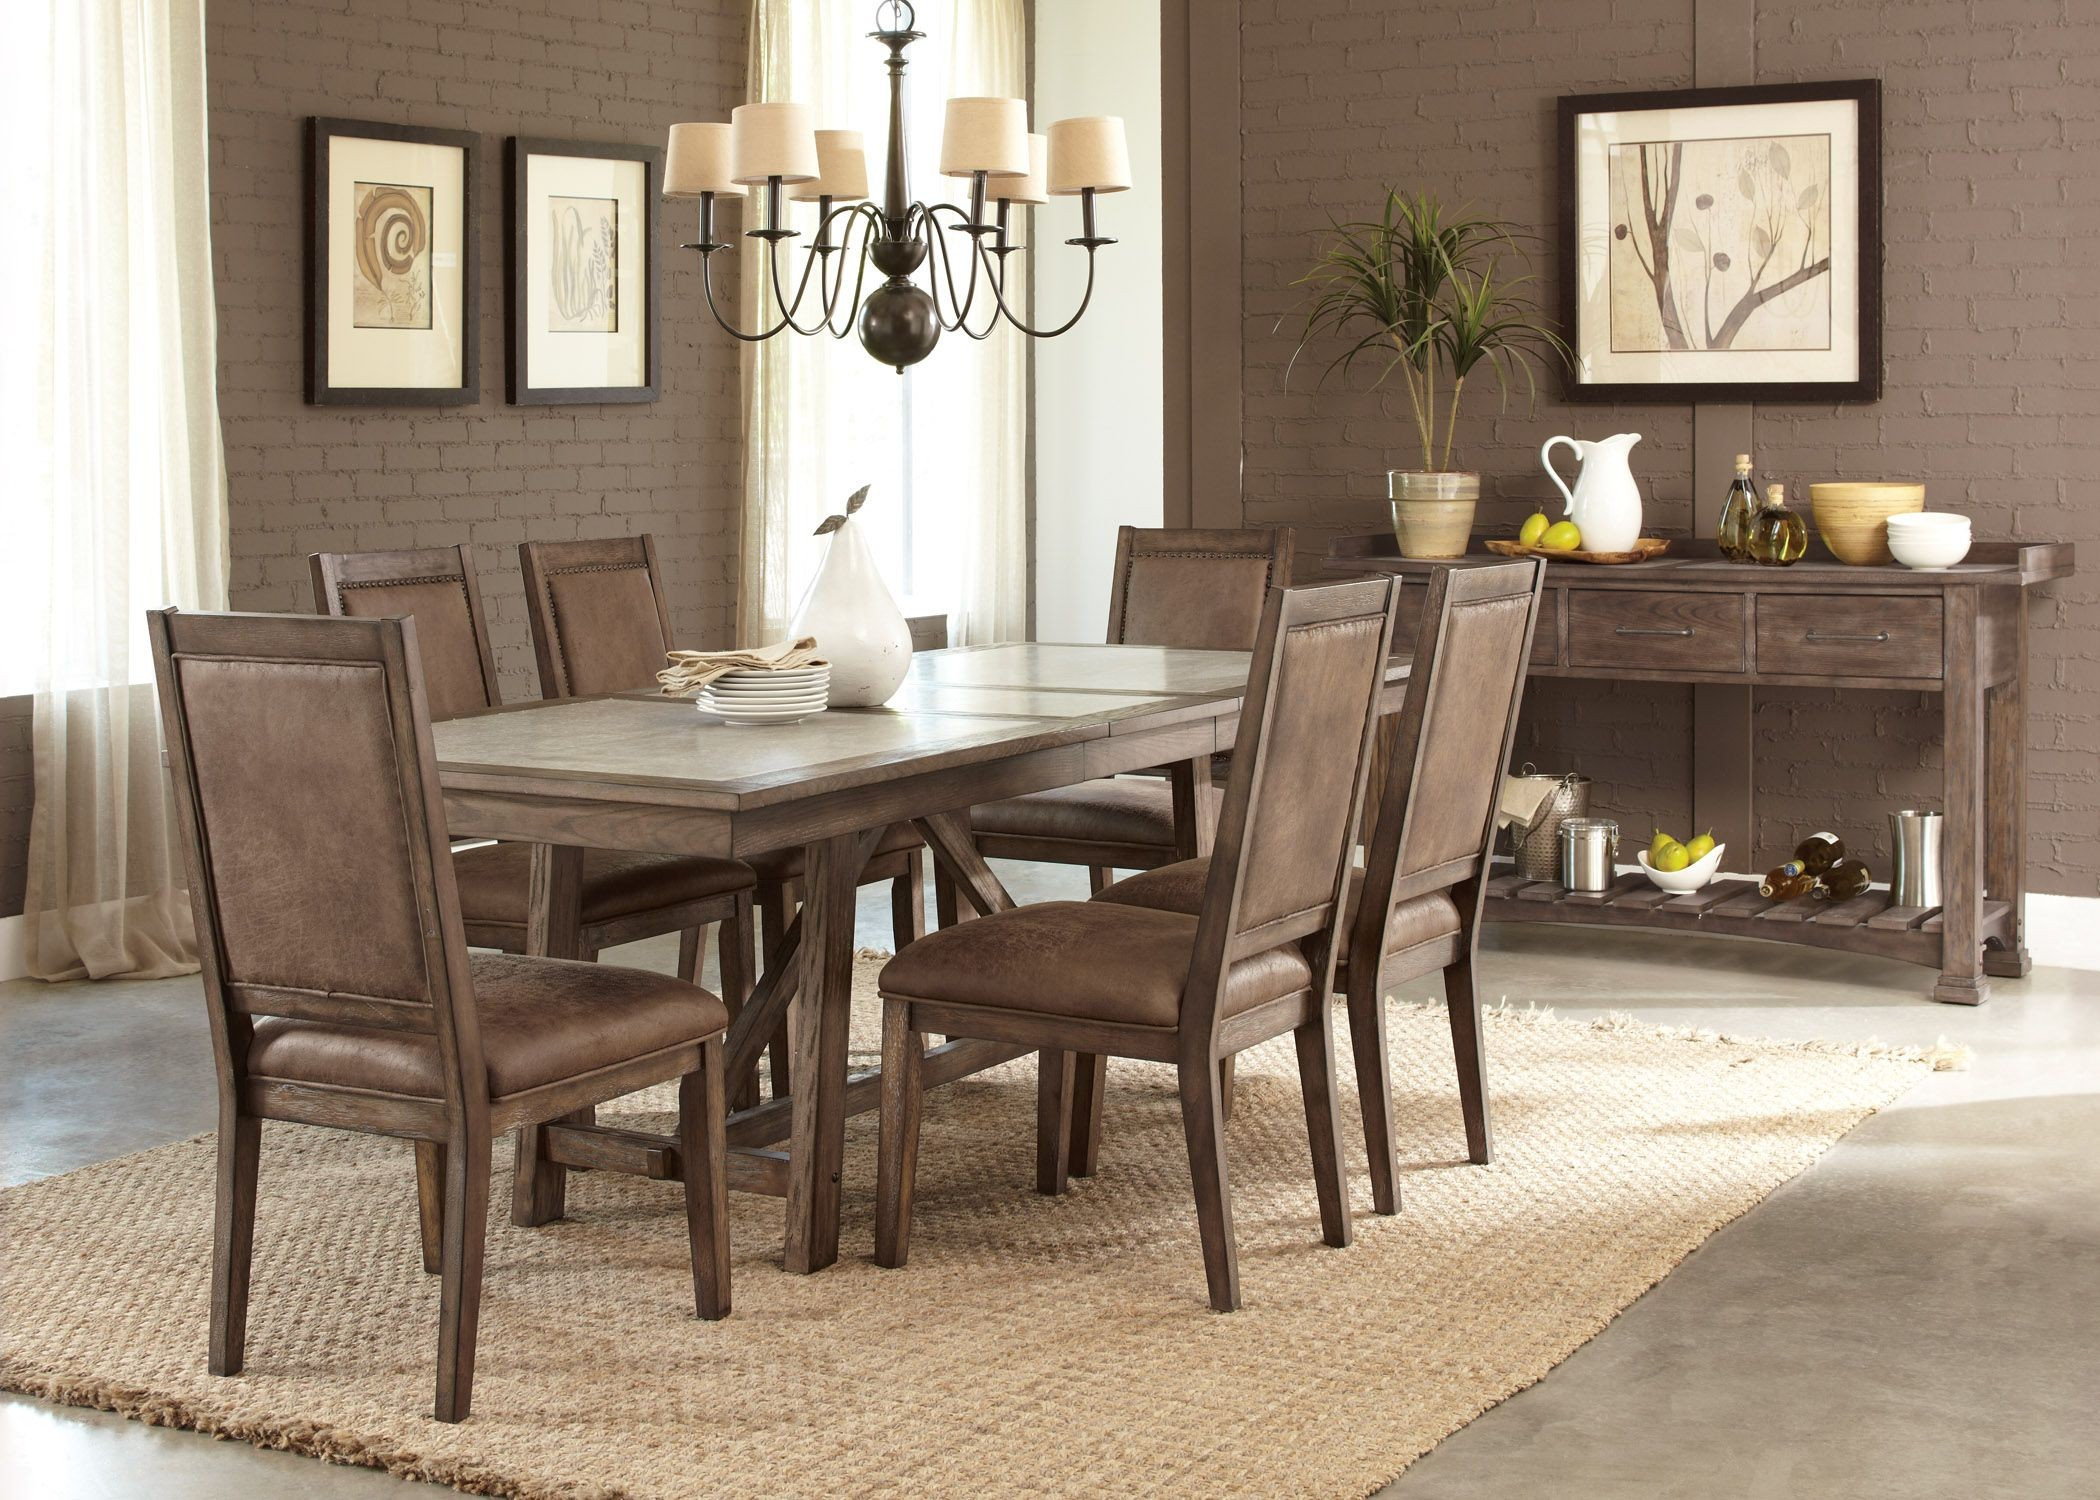 Stone Brook Trestle Dining Room Set from Liberty 466  : 466 dr3 from colemanfurniture.com size 2100 x 1500 jpeg 693kB